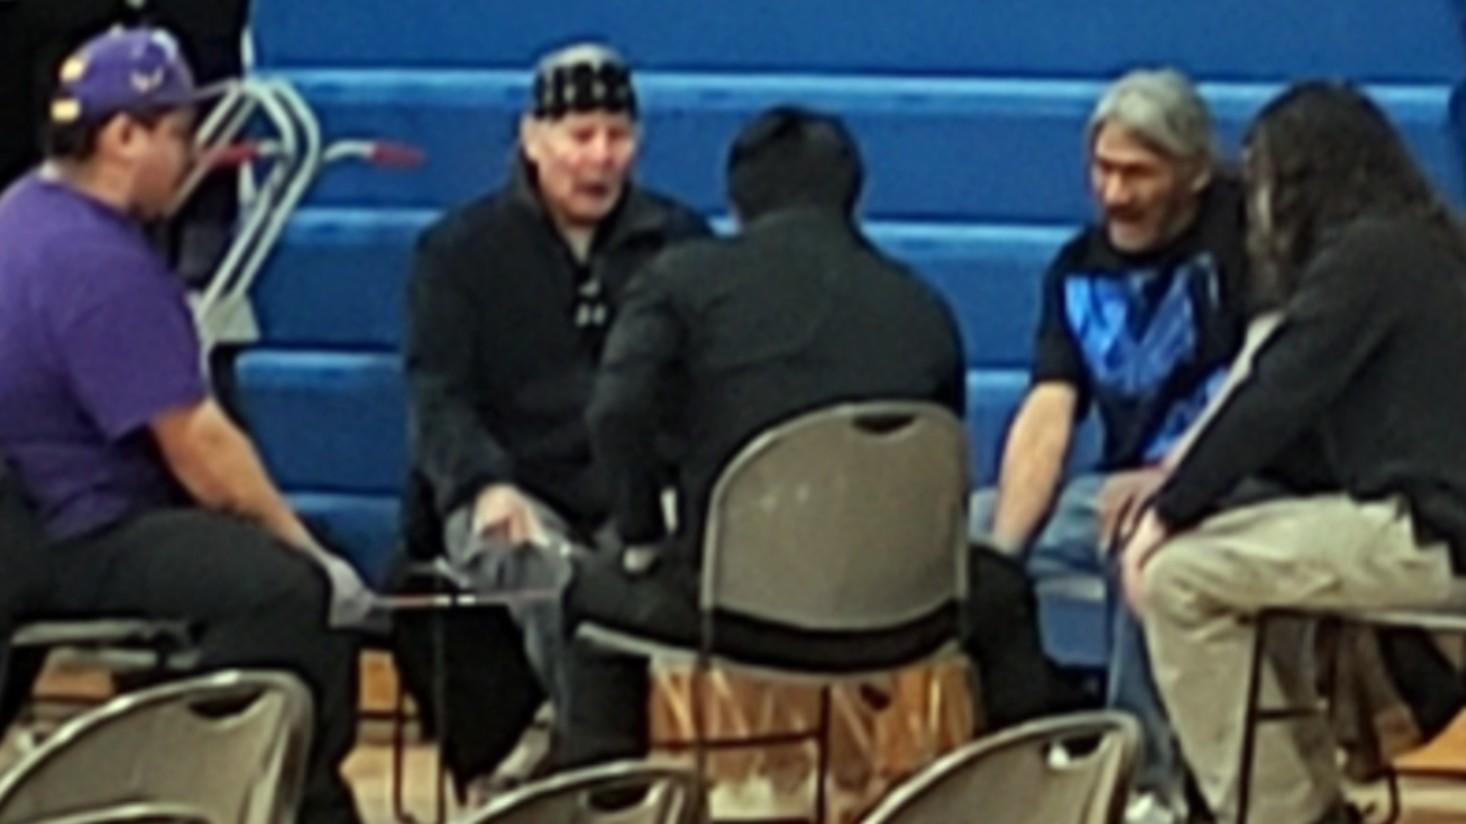 Thank you to Anishanaabe Ogichidaag drumming group for being part of our Veterans Day program.